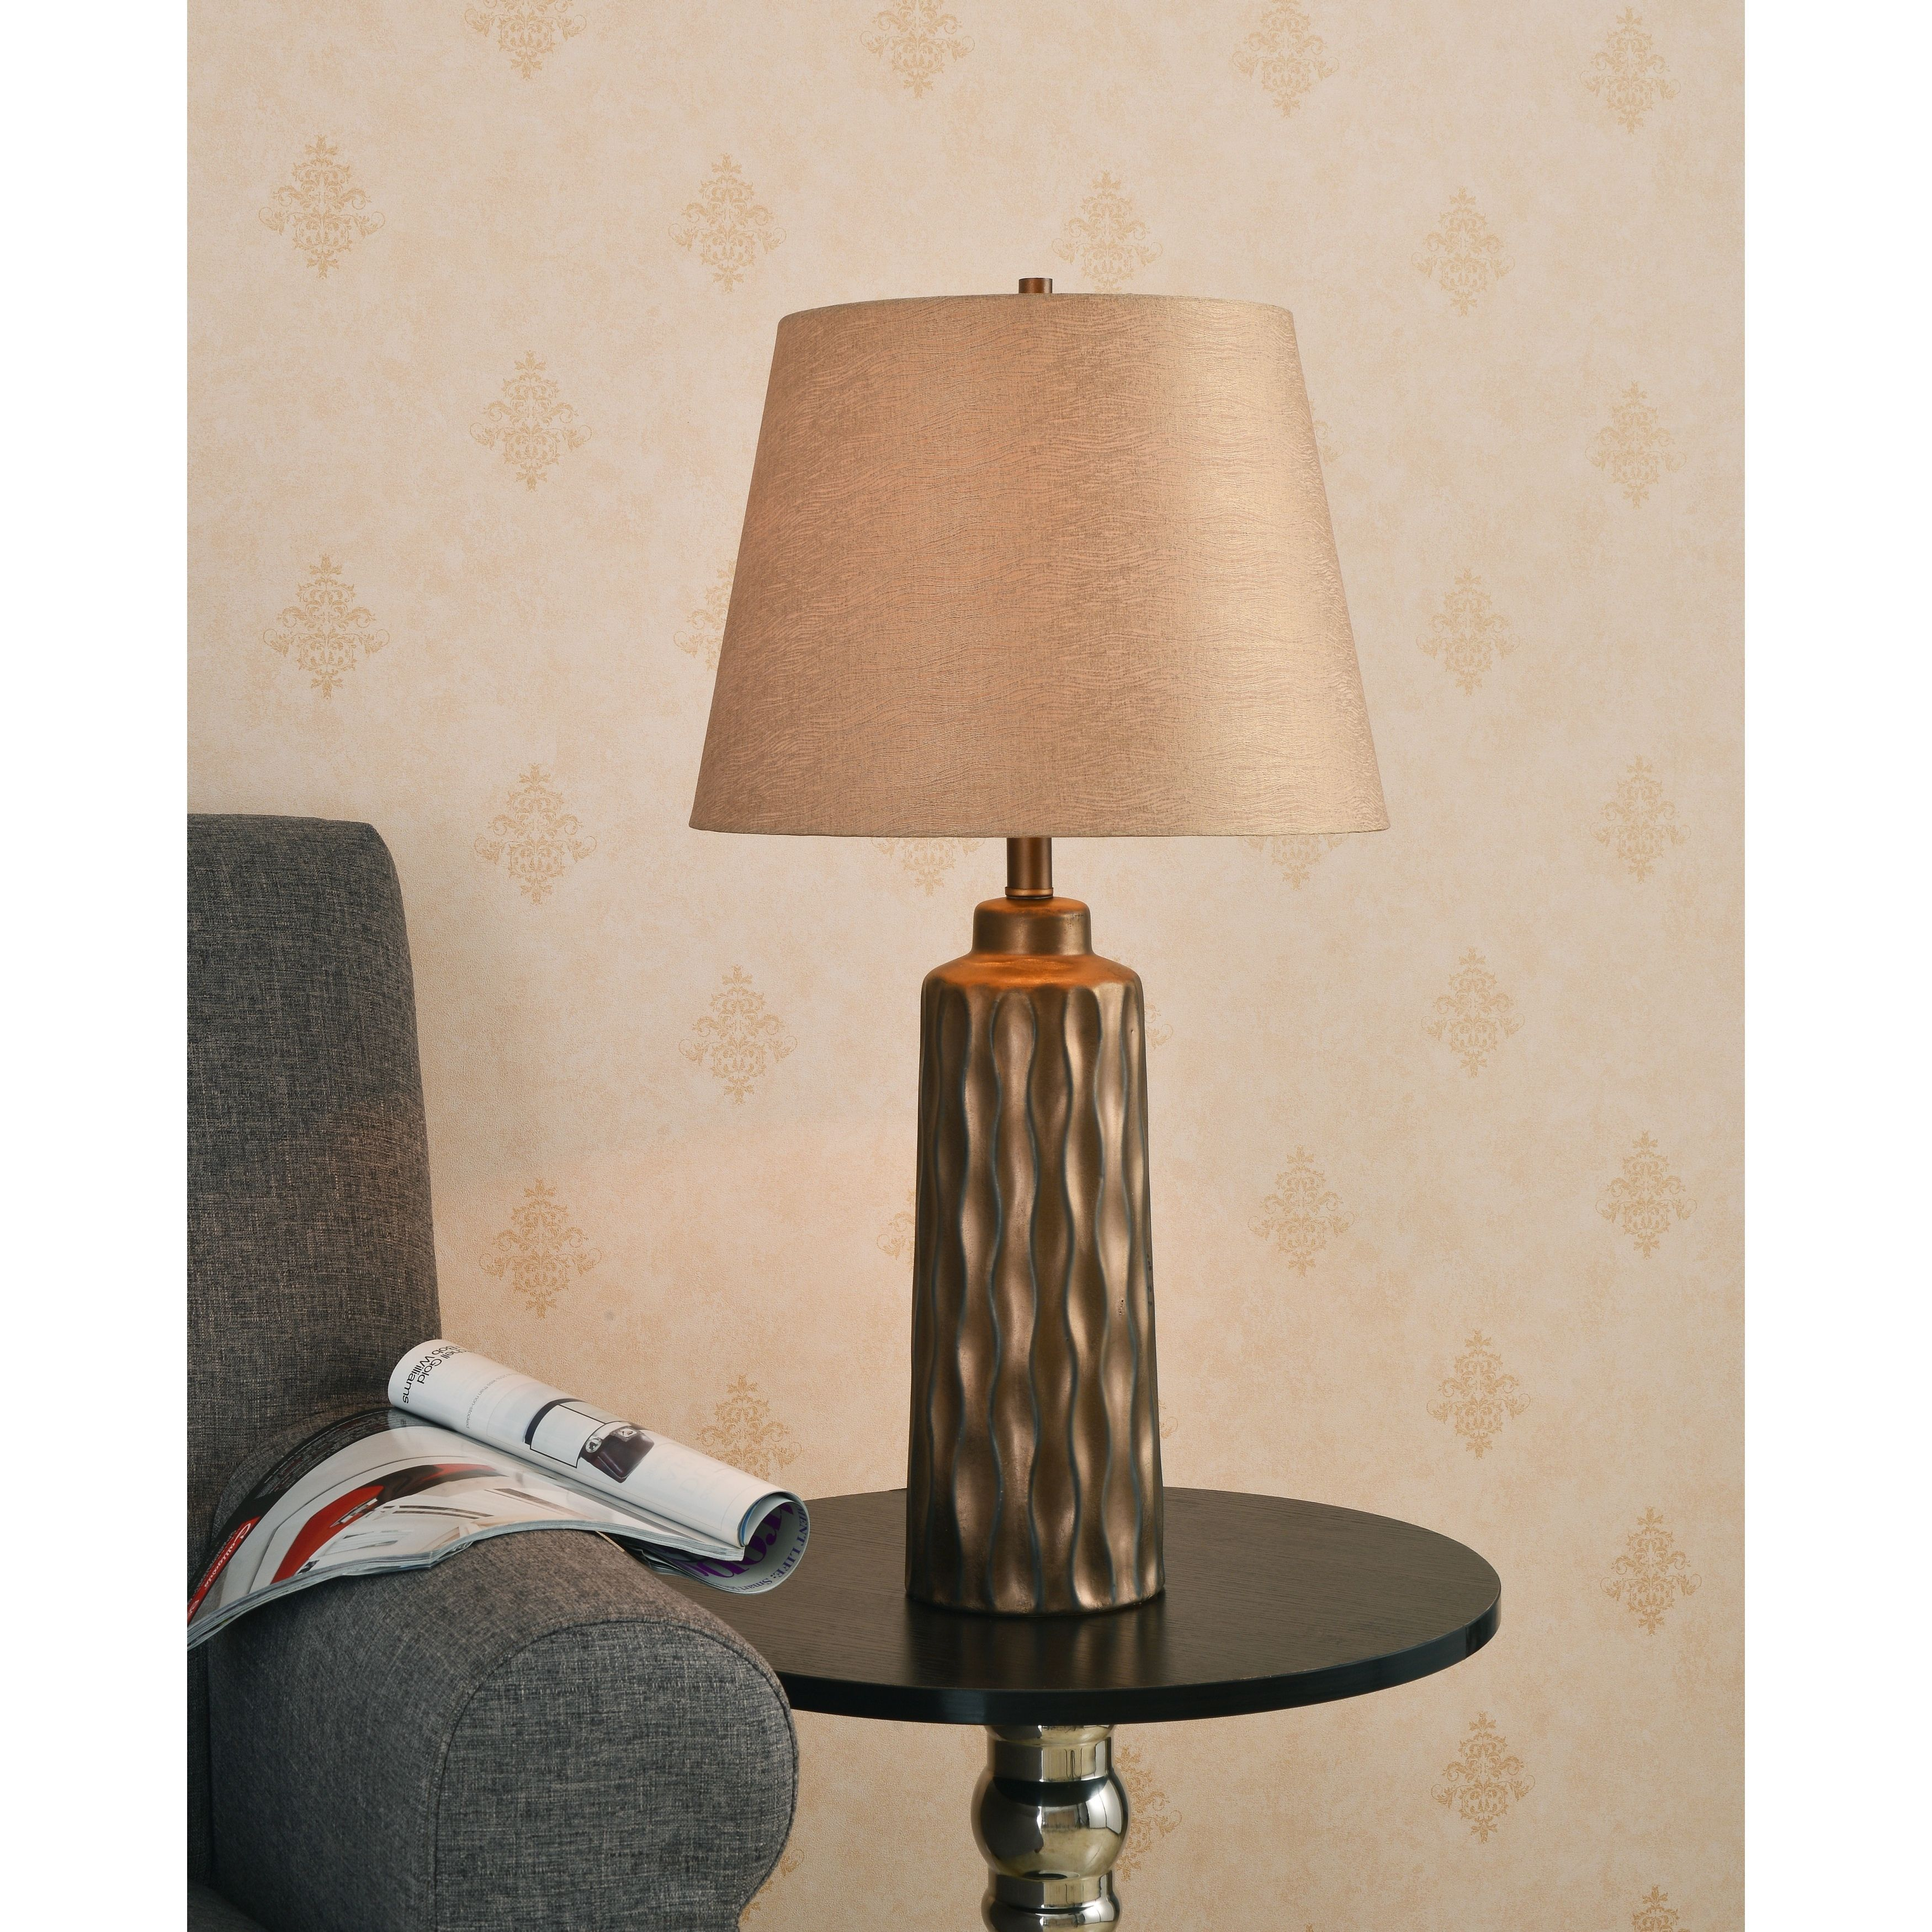 Design craft valley table lamp brown ceramic outlet store design craft valley table lamp geotapseo Images